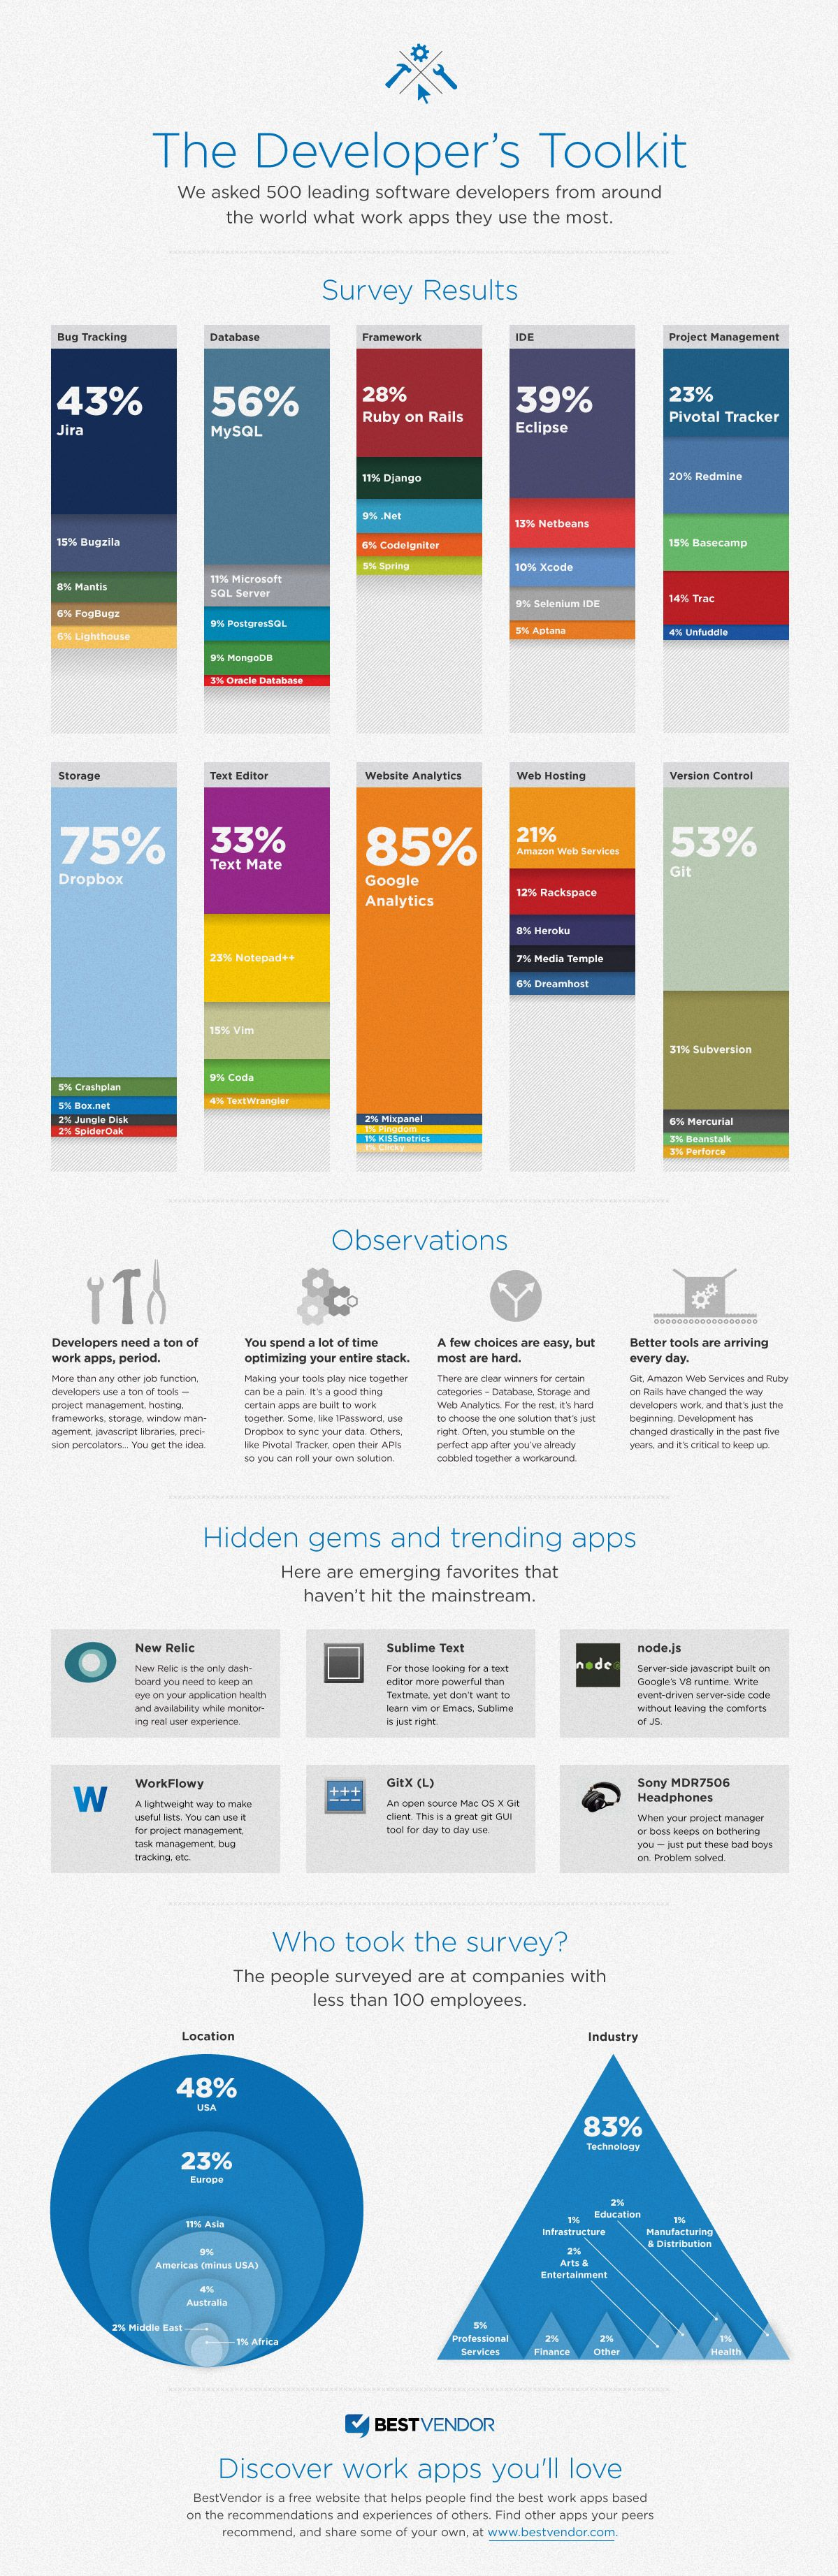 The Developer's Toolkit  http://www.readwriteweb.com/hack/2011/12/infographic-what-tools-develop.php